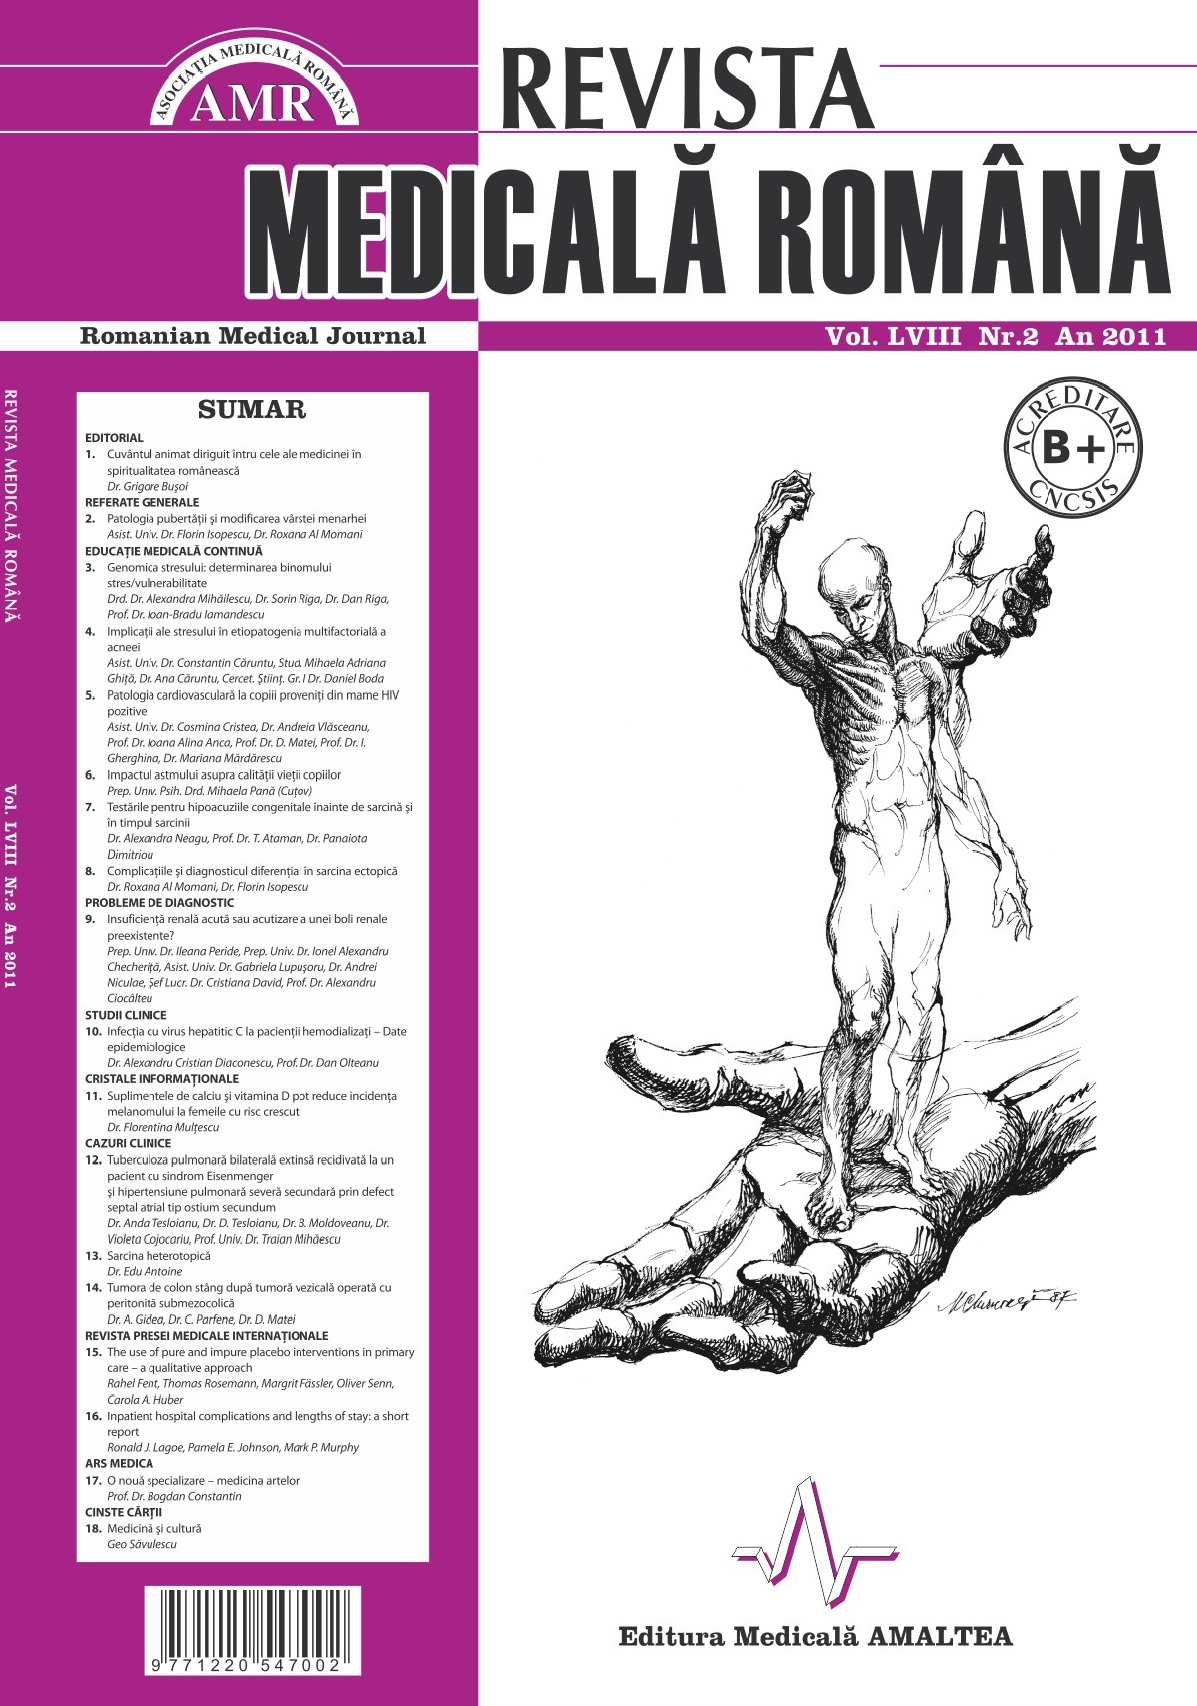 REVISTA MEDICALA ROMANA - Romanian Medical Journal, Vol. LVIII, Nr. 2, An 2011